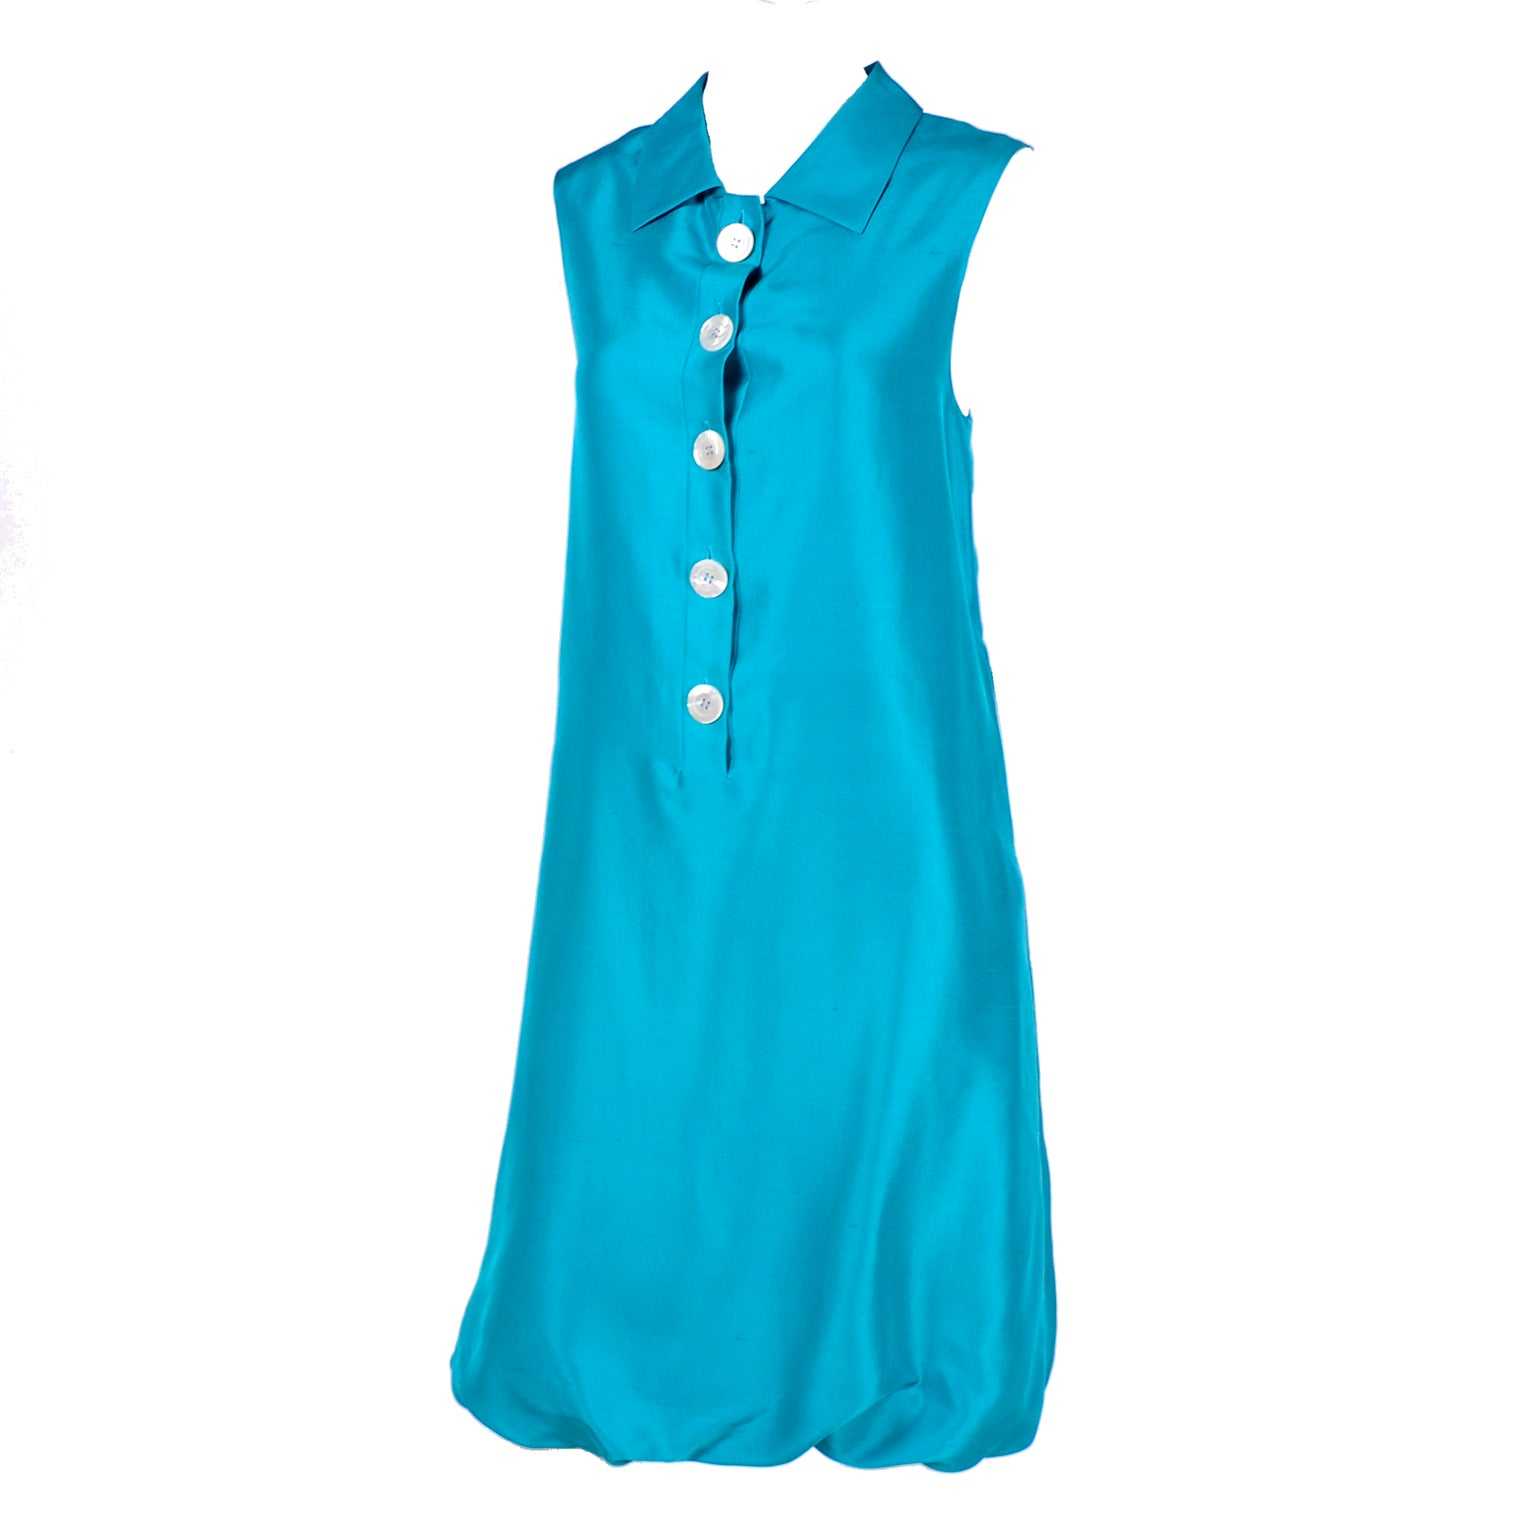 Oscar de la Renta Blue Turquoise Sleeveless Silk Dress W Bubble Hem Resort 2009